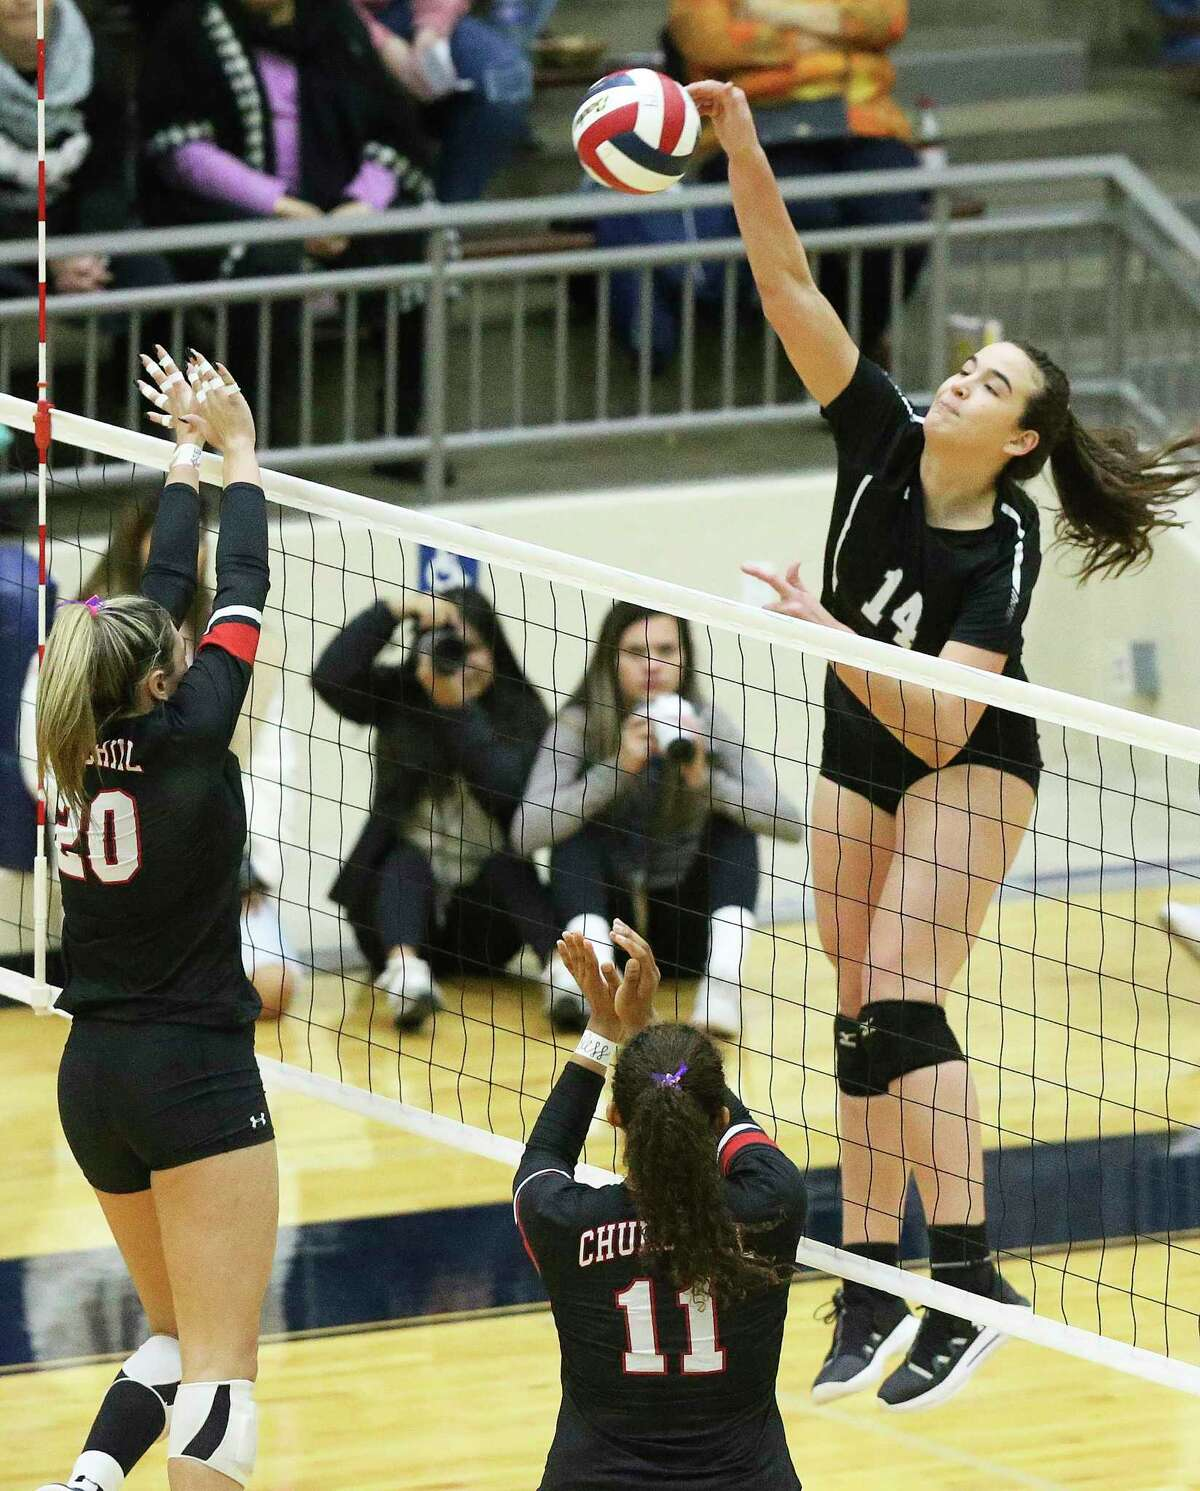 Elise McGhee slams a shot for the Cougars as Clark defeats Churchill in 6A third round volleyball playoff action at the Alamo Convocation Center on Nov. 12, 2019.